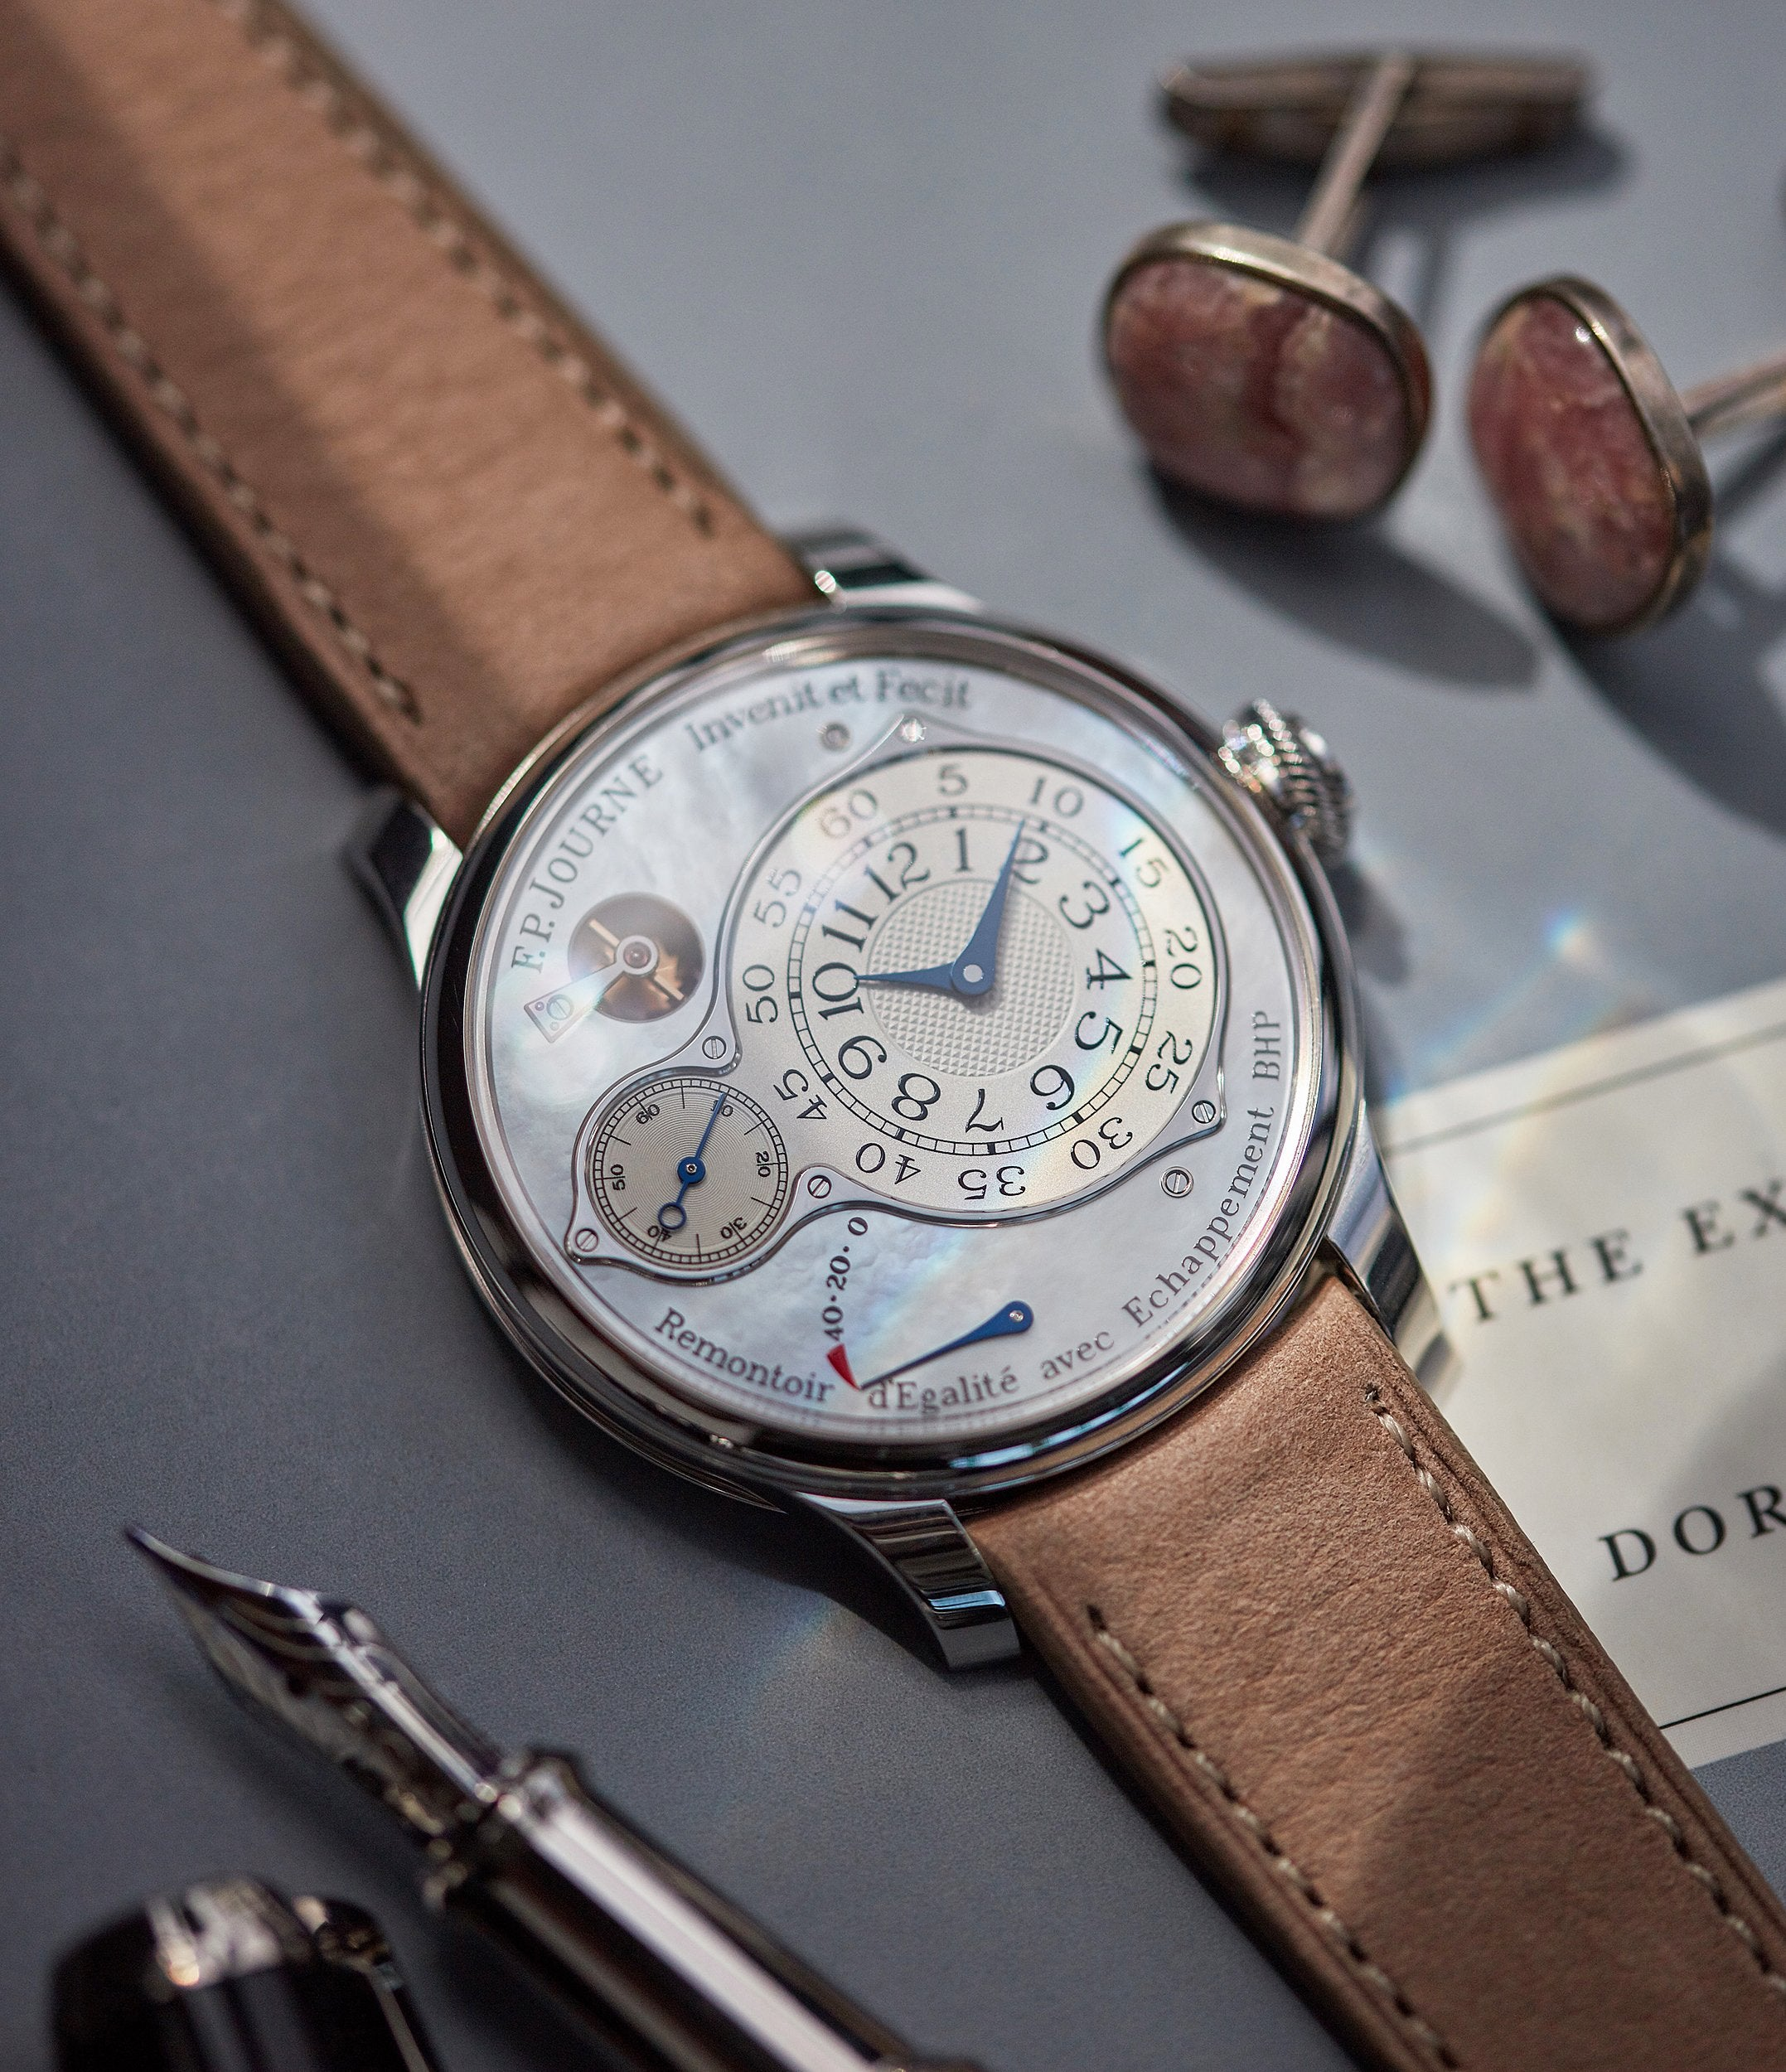 selling F. P. Journe Chronometre Optimum pearl dial platinum dress watch independent watchmaker for sale online A Collected Man London UK specialist rare watches